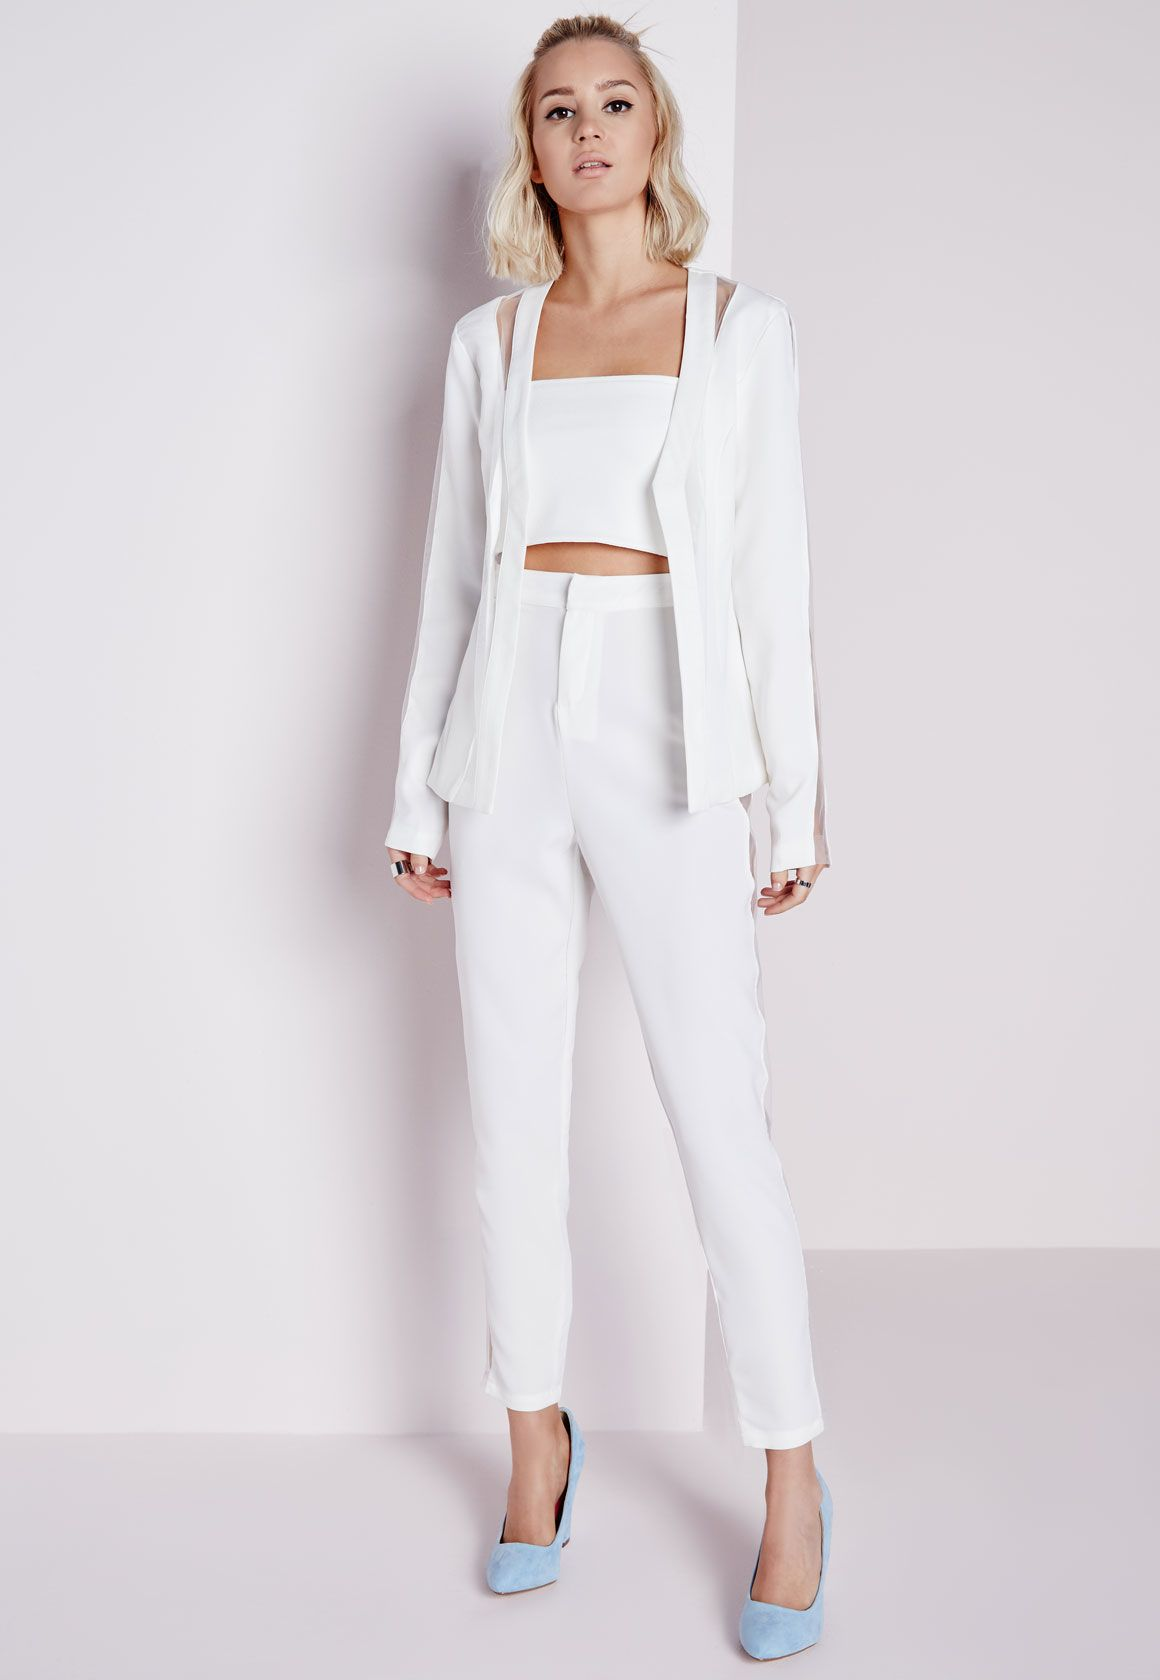 3e1f4400033 All-White Party Outfits Ideas for Women - If you ve never heard of an all-white  party